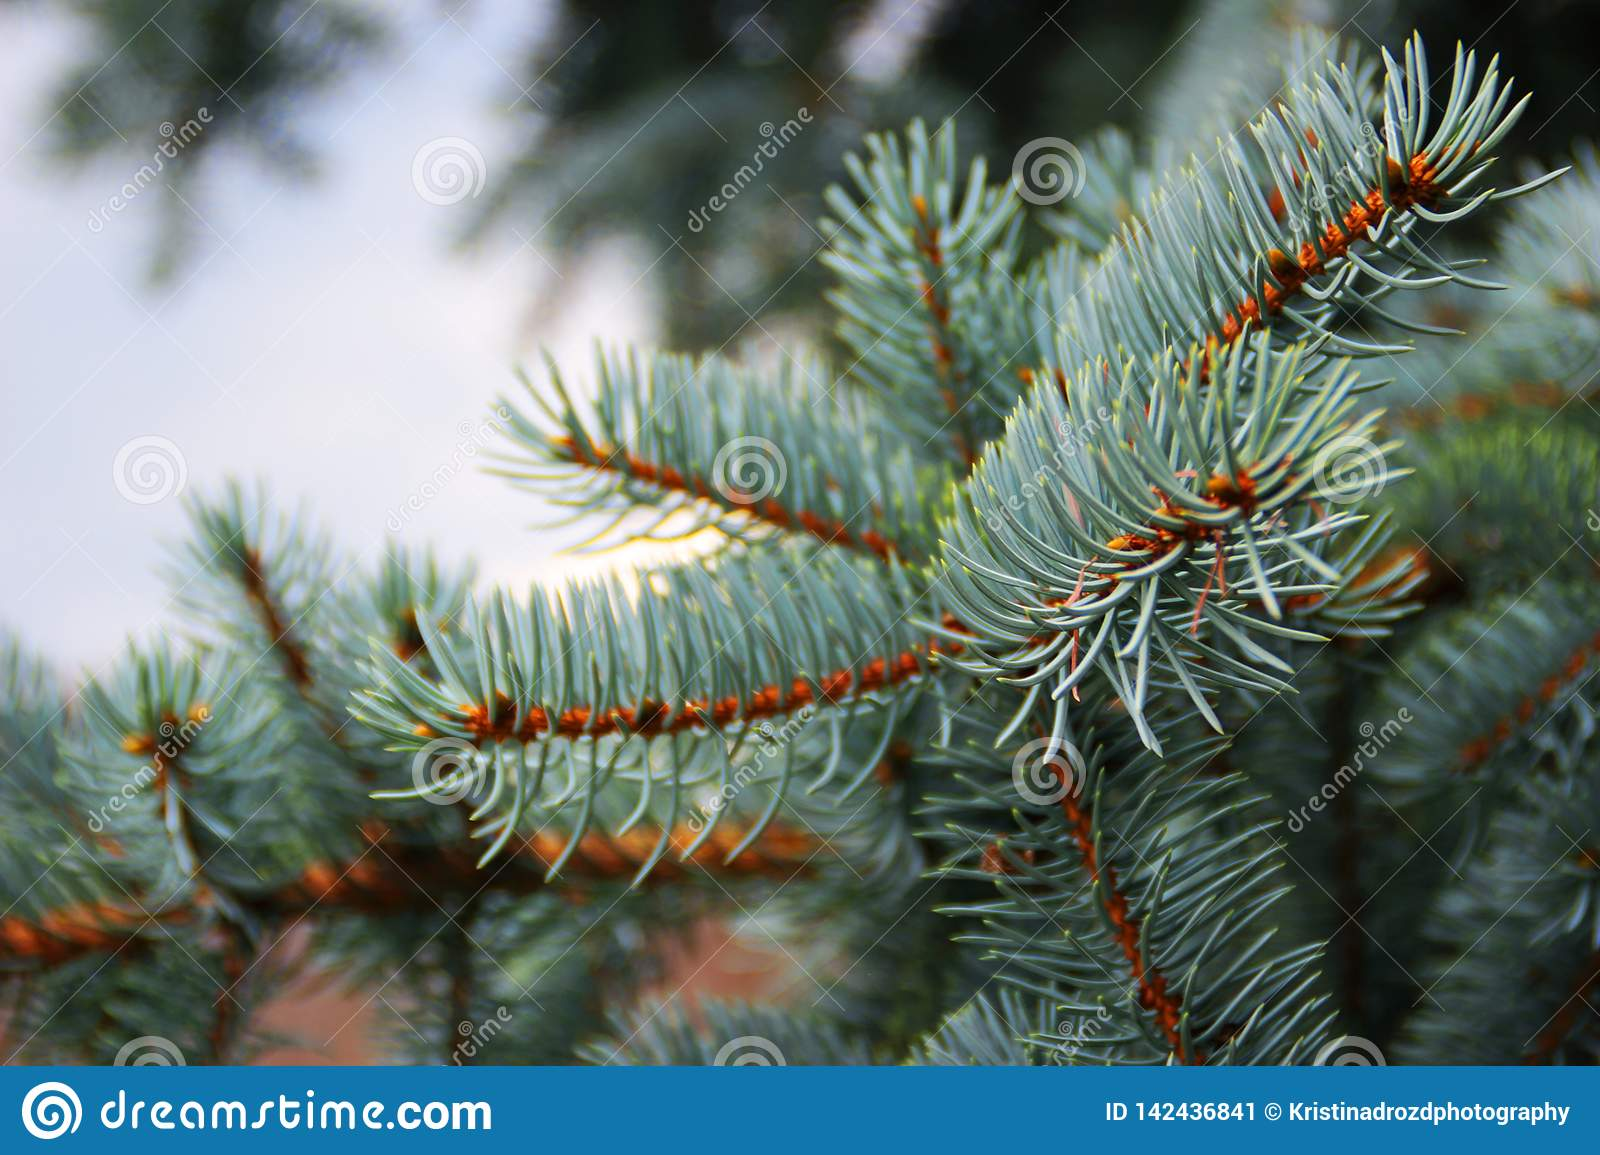 Blue spruce branch in a cloudy day